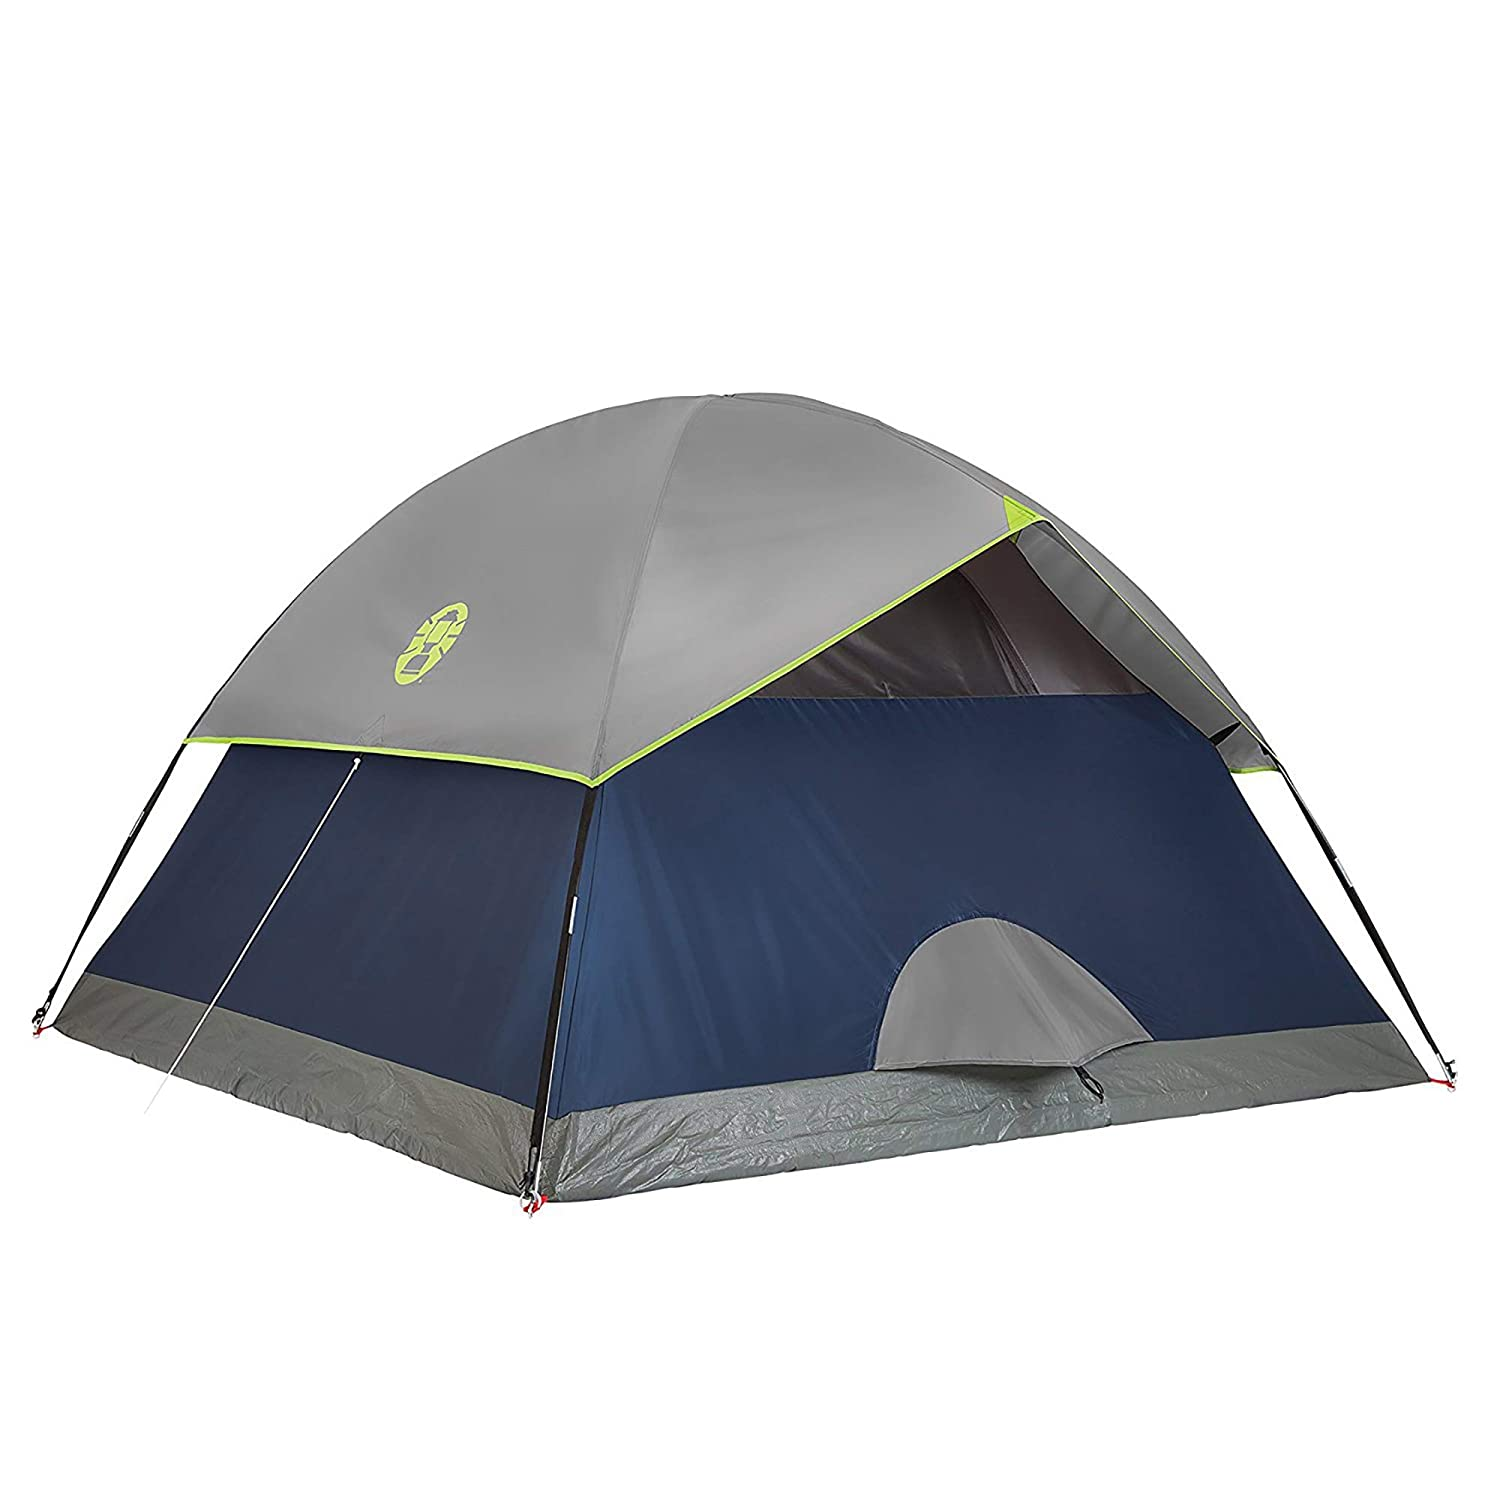 df69c3a121a Amazon.com   Coleman Sundome 4-Person Tent